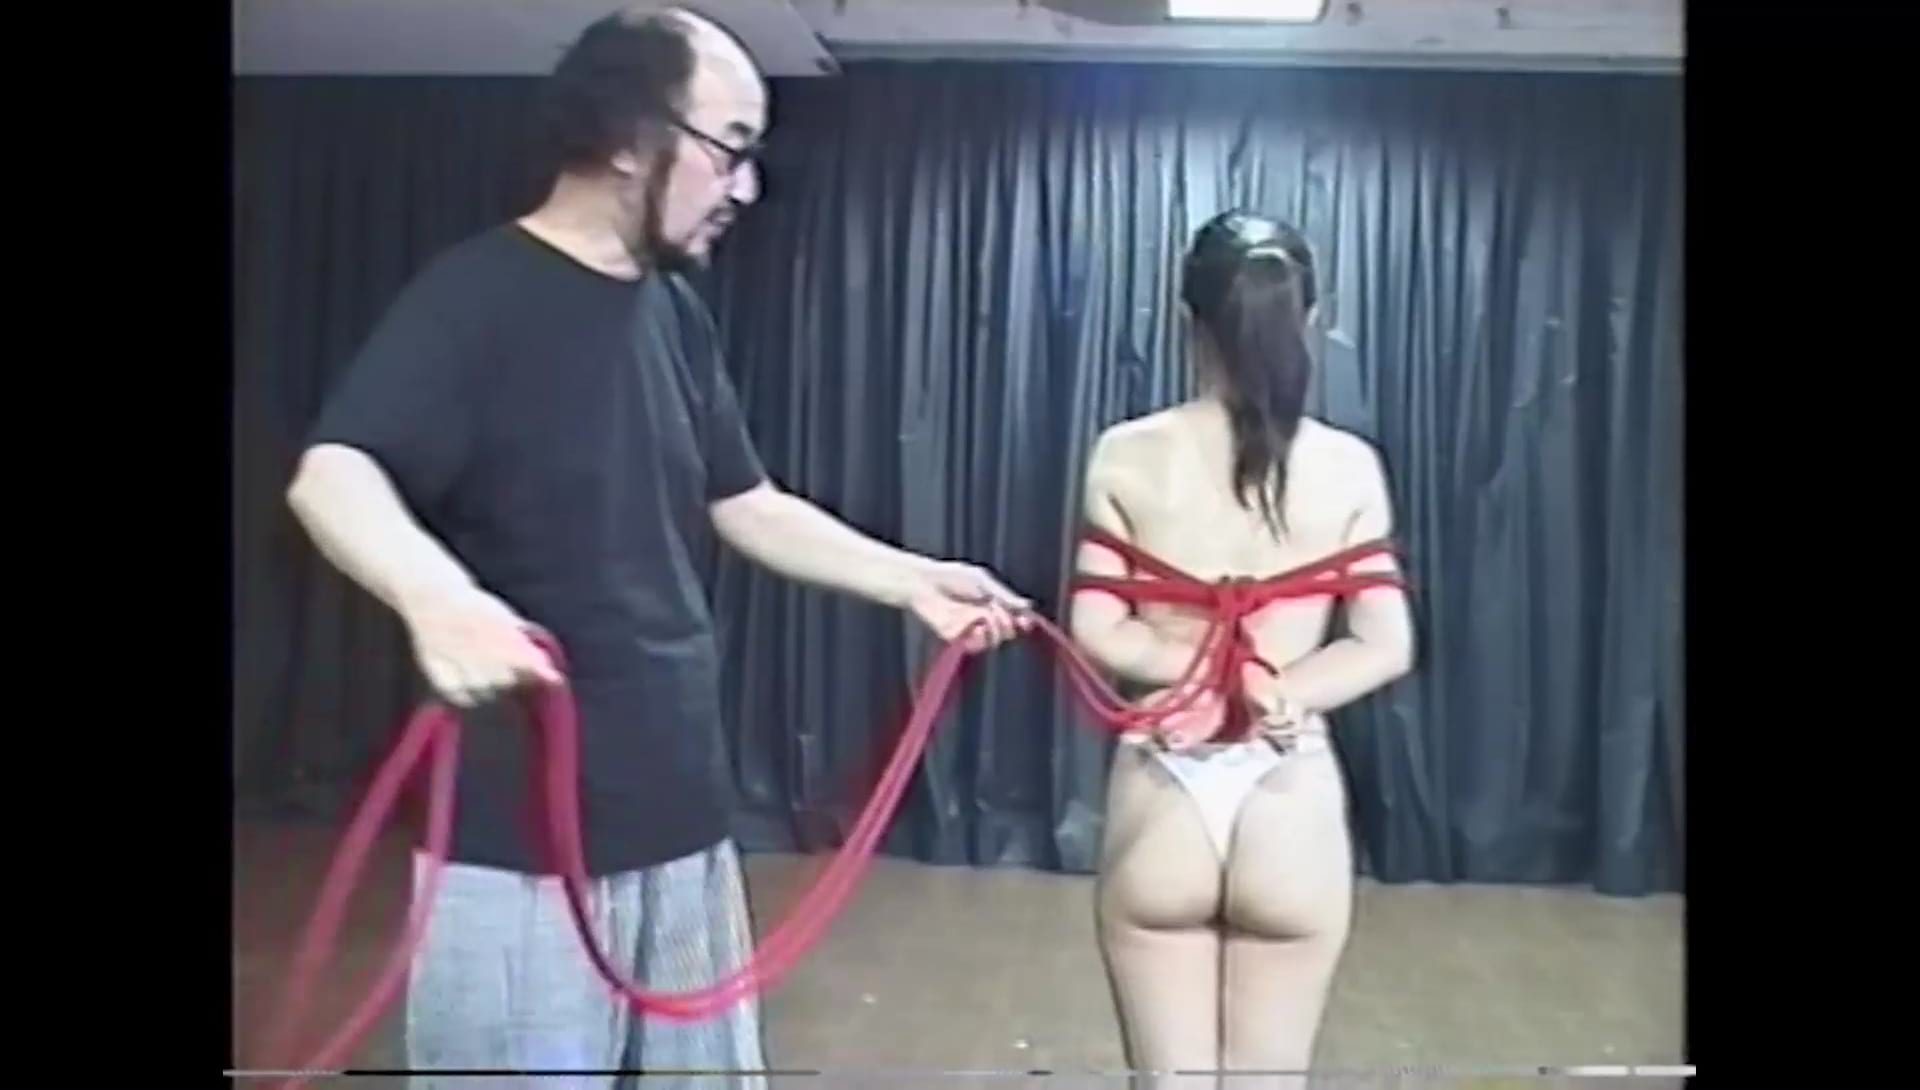 Nagaike: Shibari for SM (How To) Vol. 1 Japanese Bondage